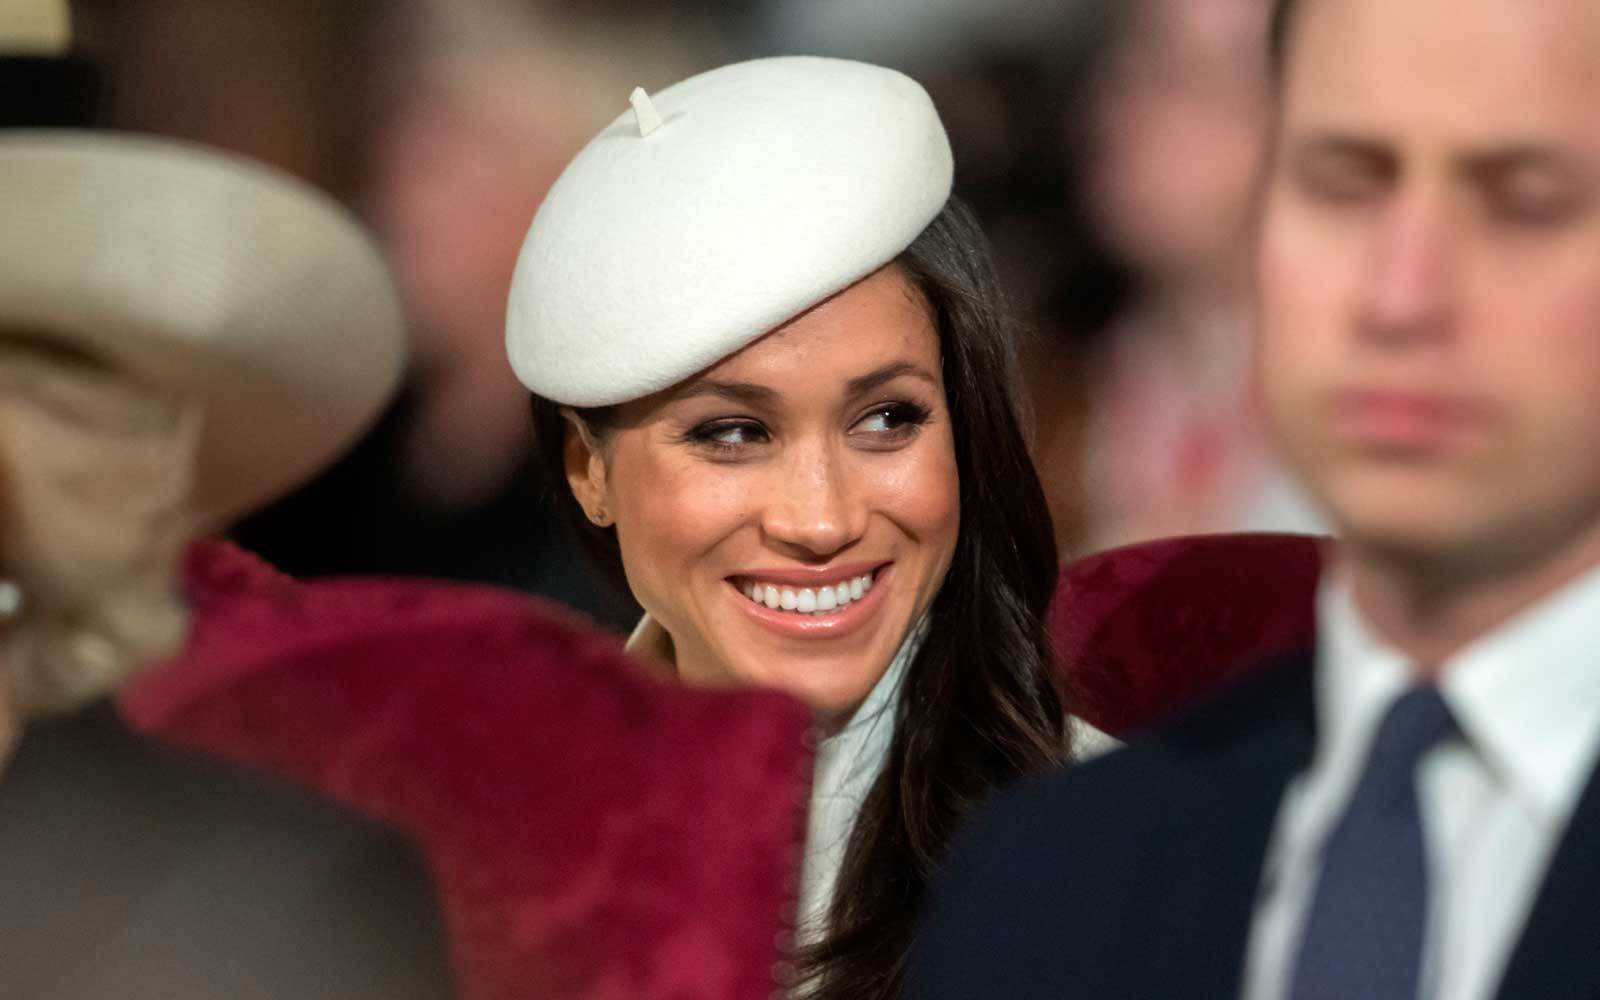 How Meghan Markle Is Secretly Prepping for Royal Life